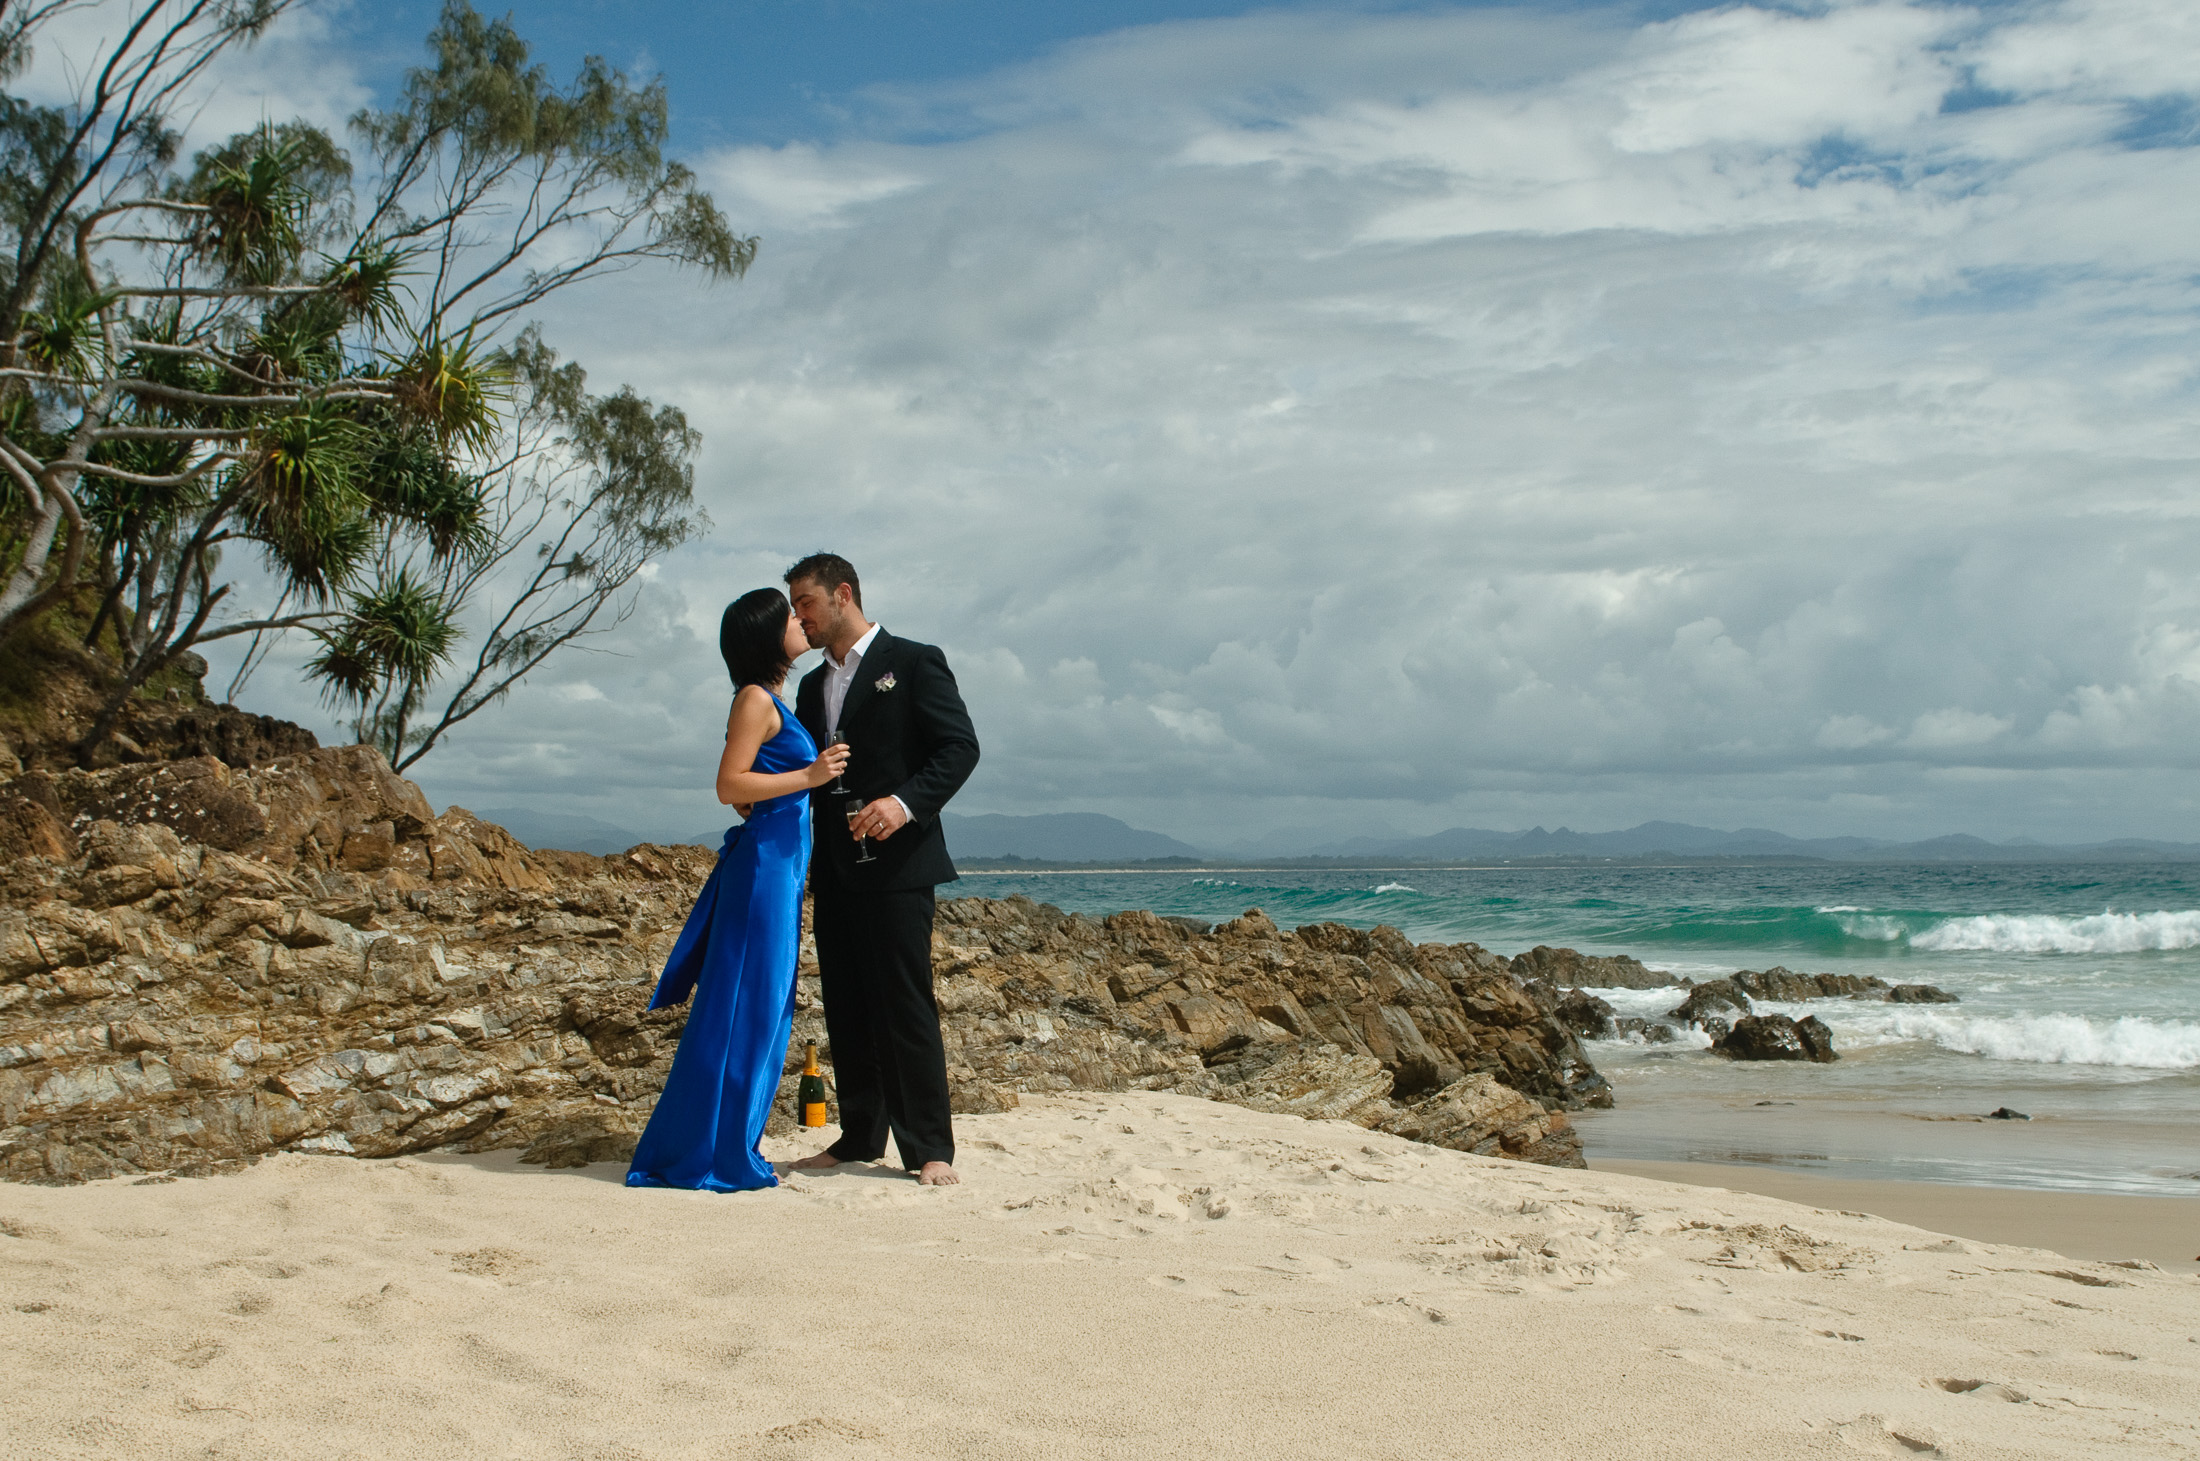 Byron Bay - Lennox Head Wedding Photography by Mark Atkins